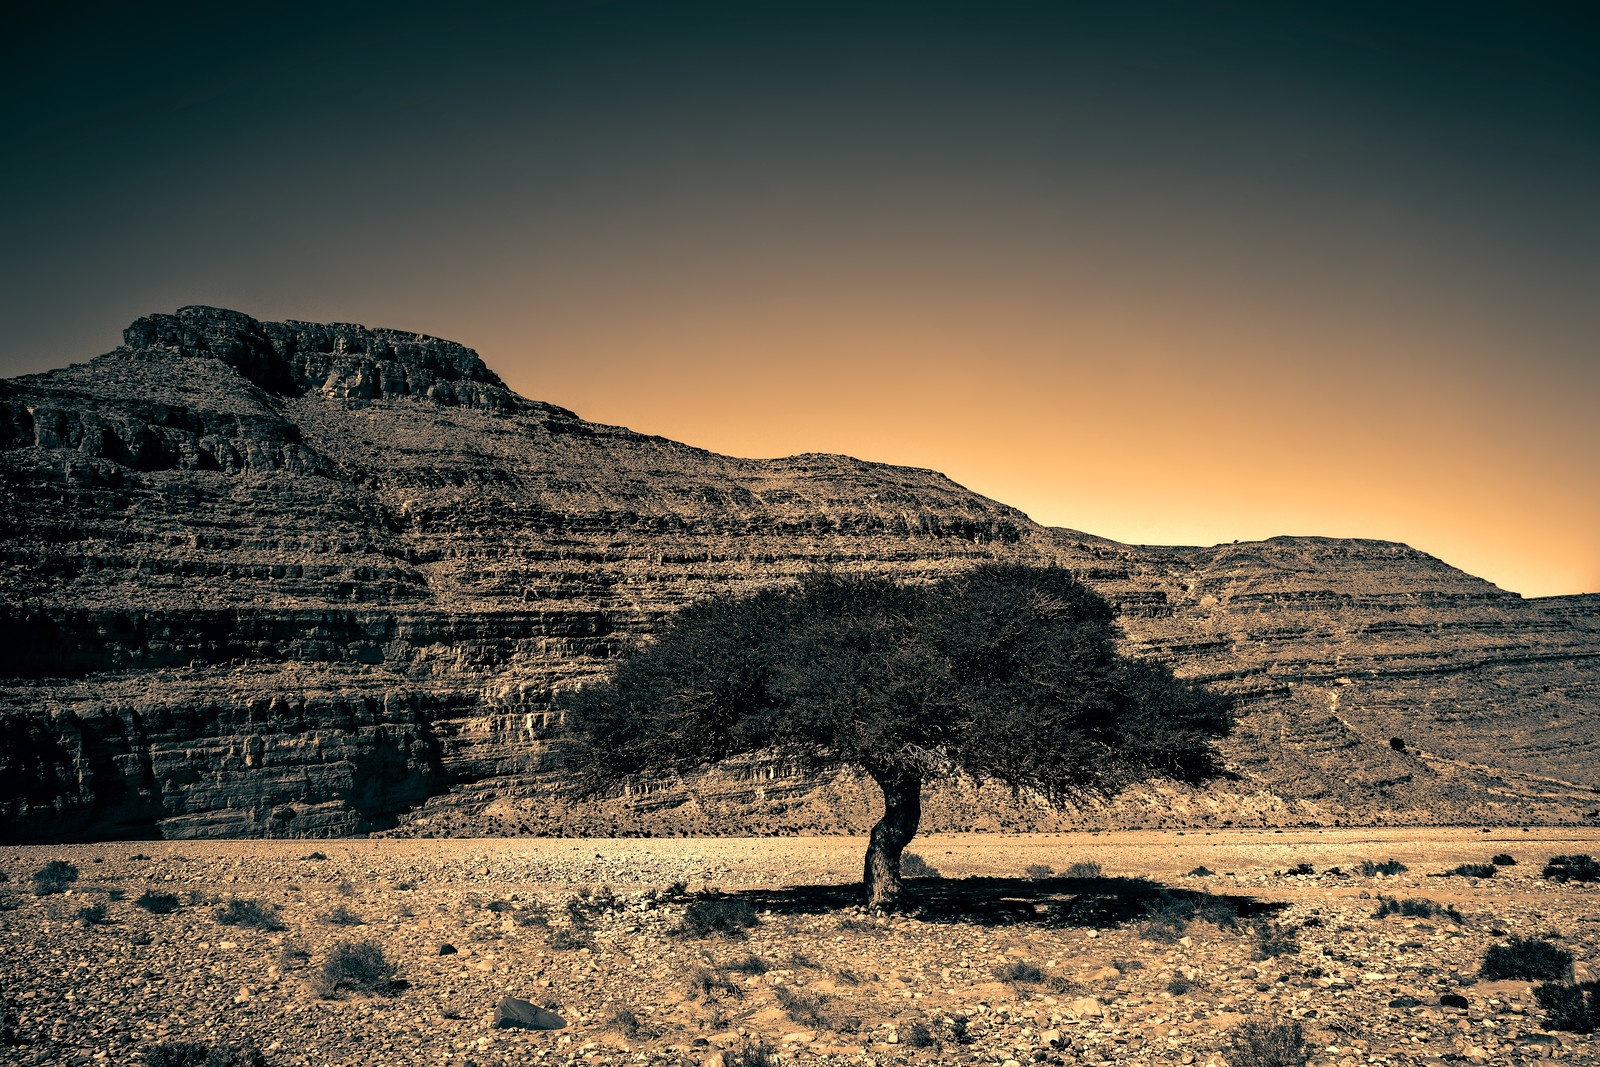 Lone Argan Tree in Southern Morocco artistic photography from Kevin Wenning at Intentionally Lost #intentionallylost